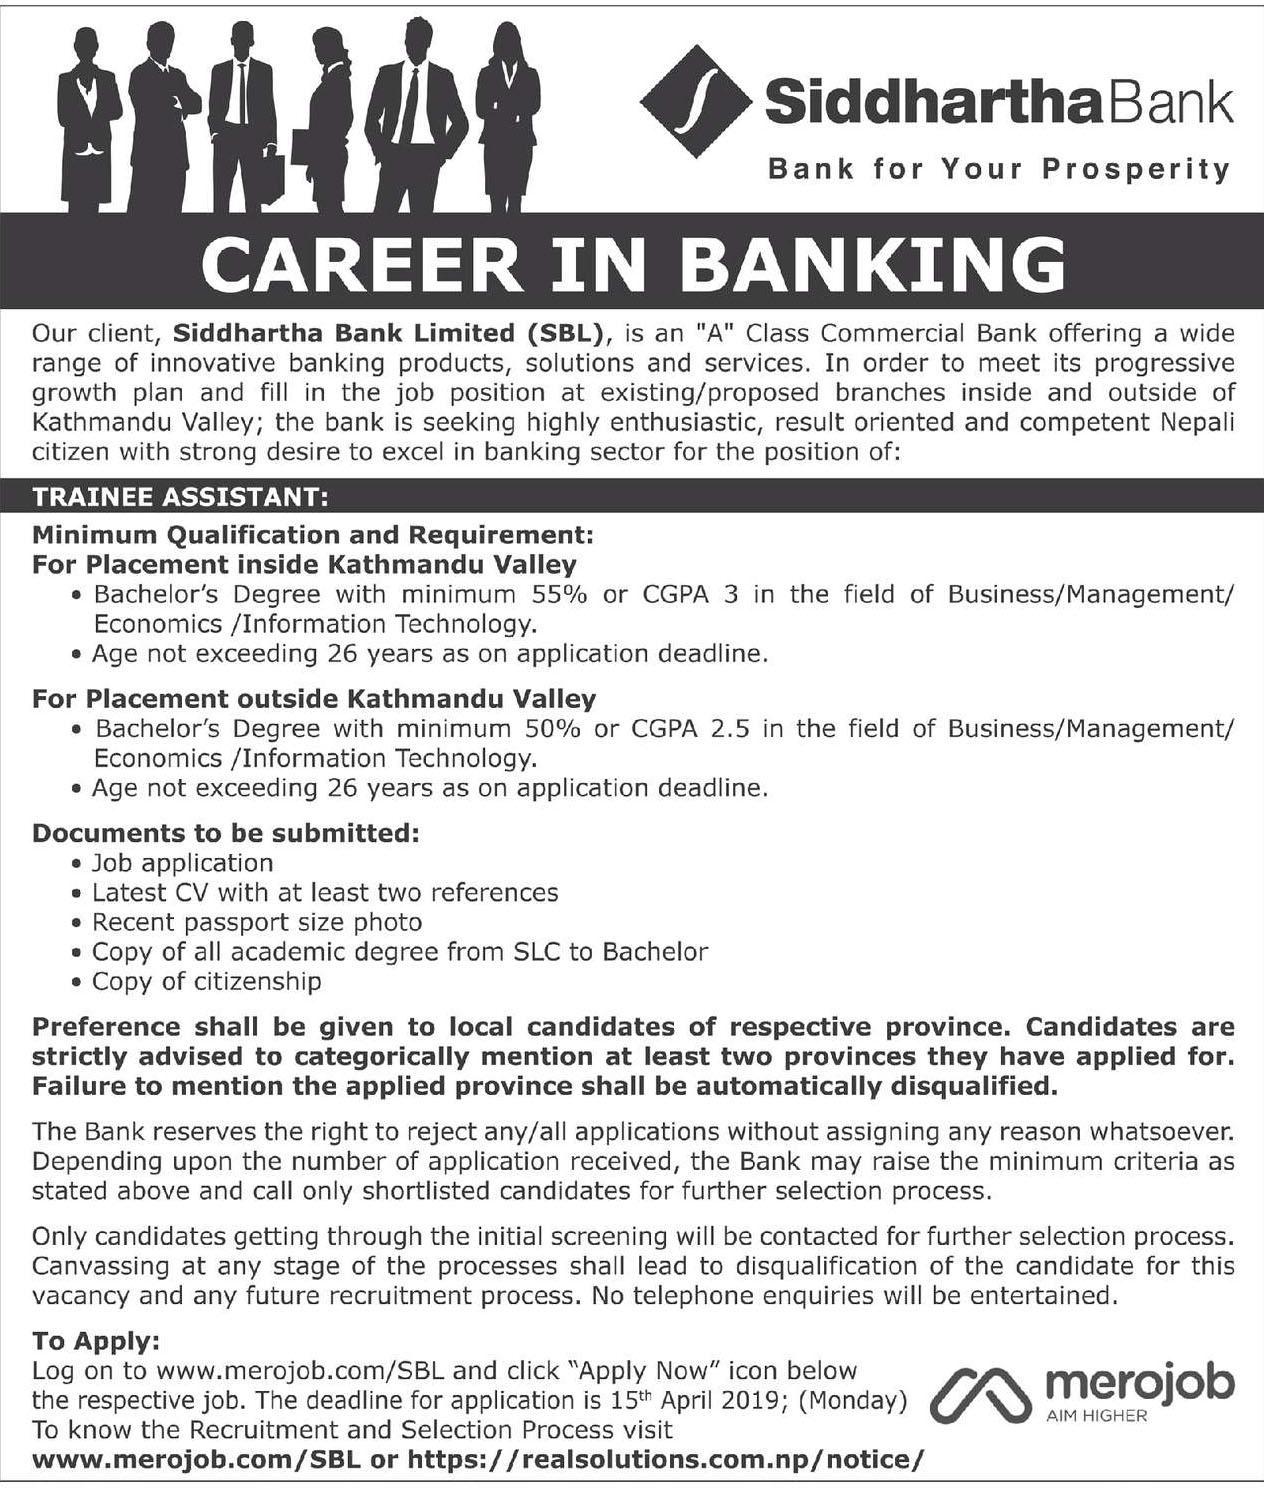 Siddhartha Bank Vacancy Announcement, Trainee Assistant